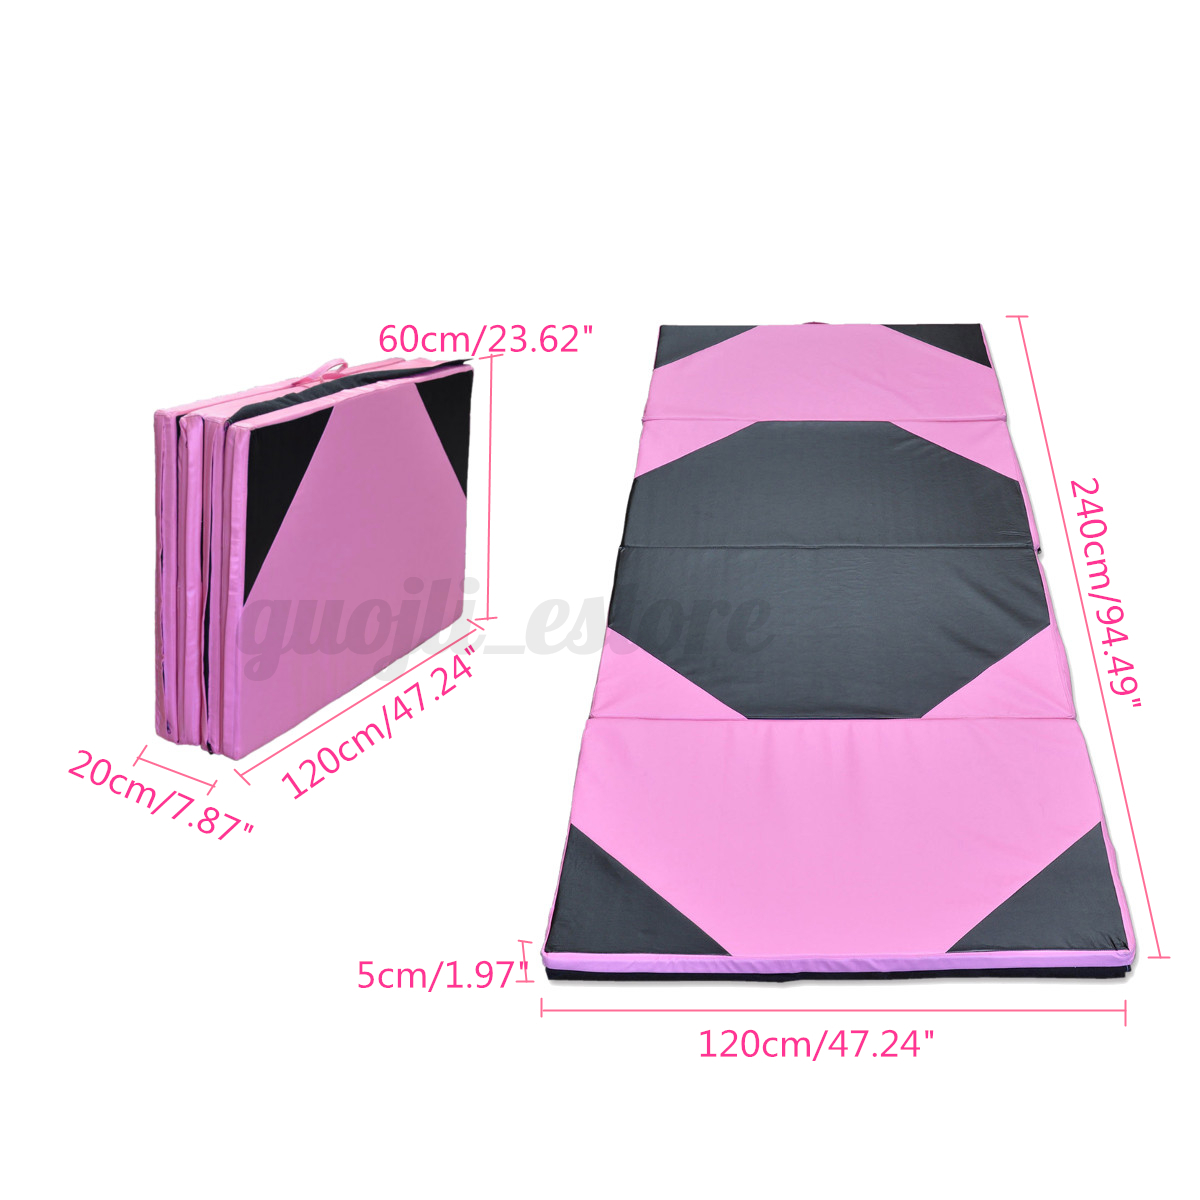 mats yoga black pink gym cm clearance exercise gymnastics floor fitness leisure mat foam folding homcom thick sports pilates